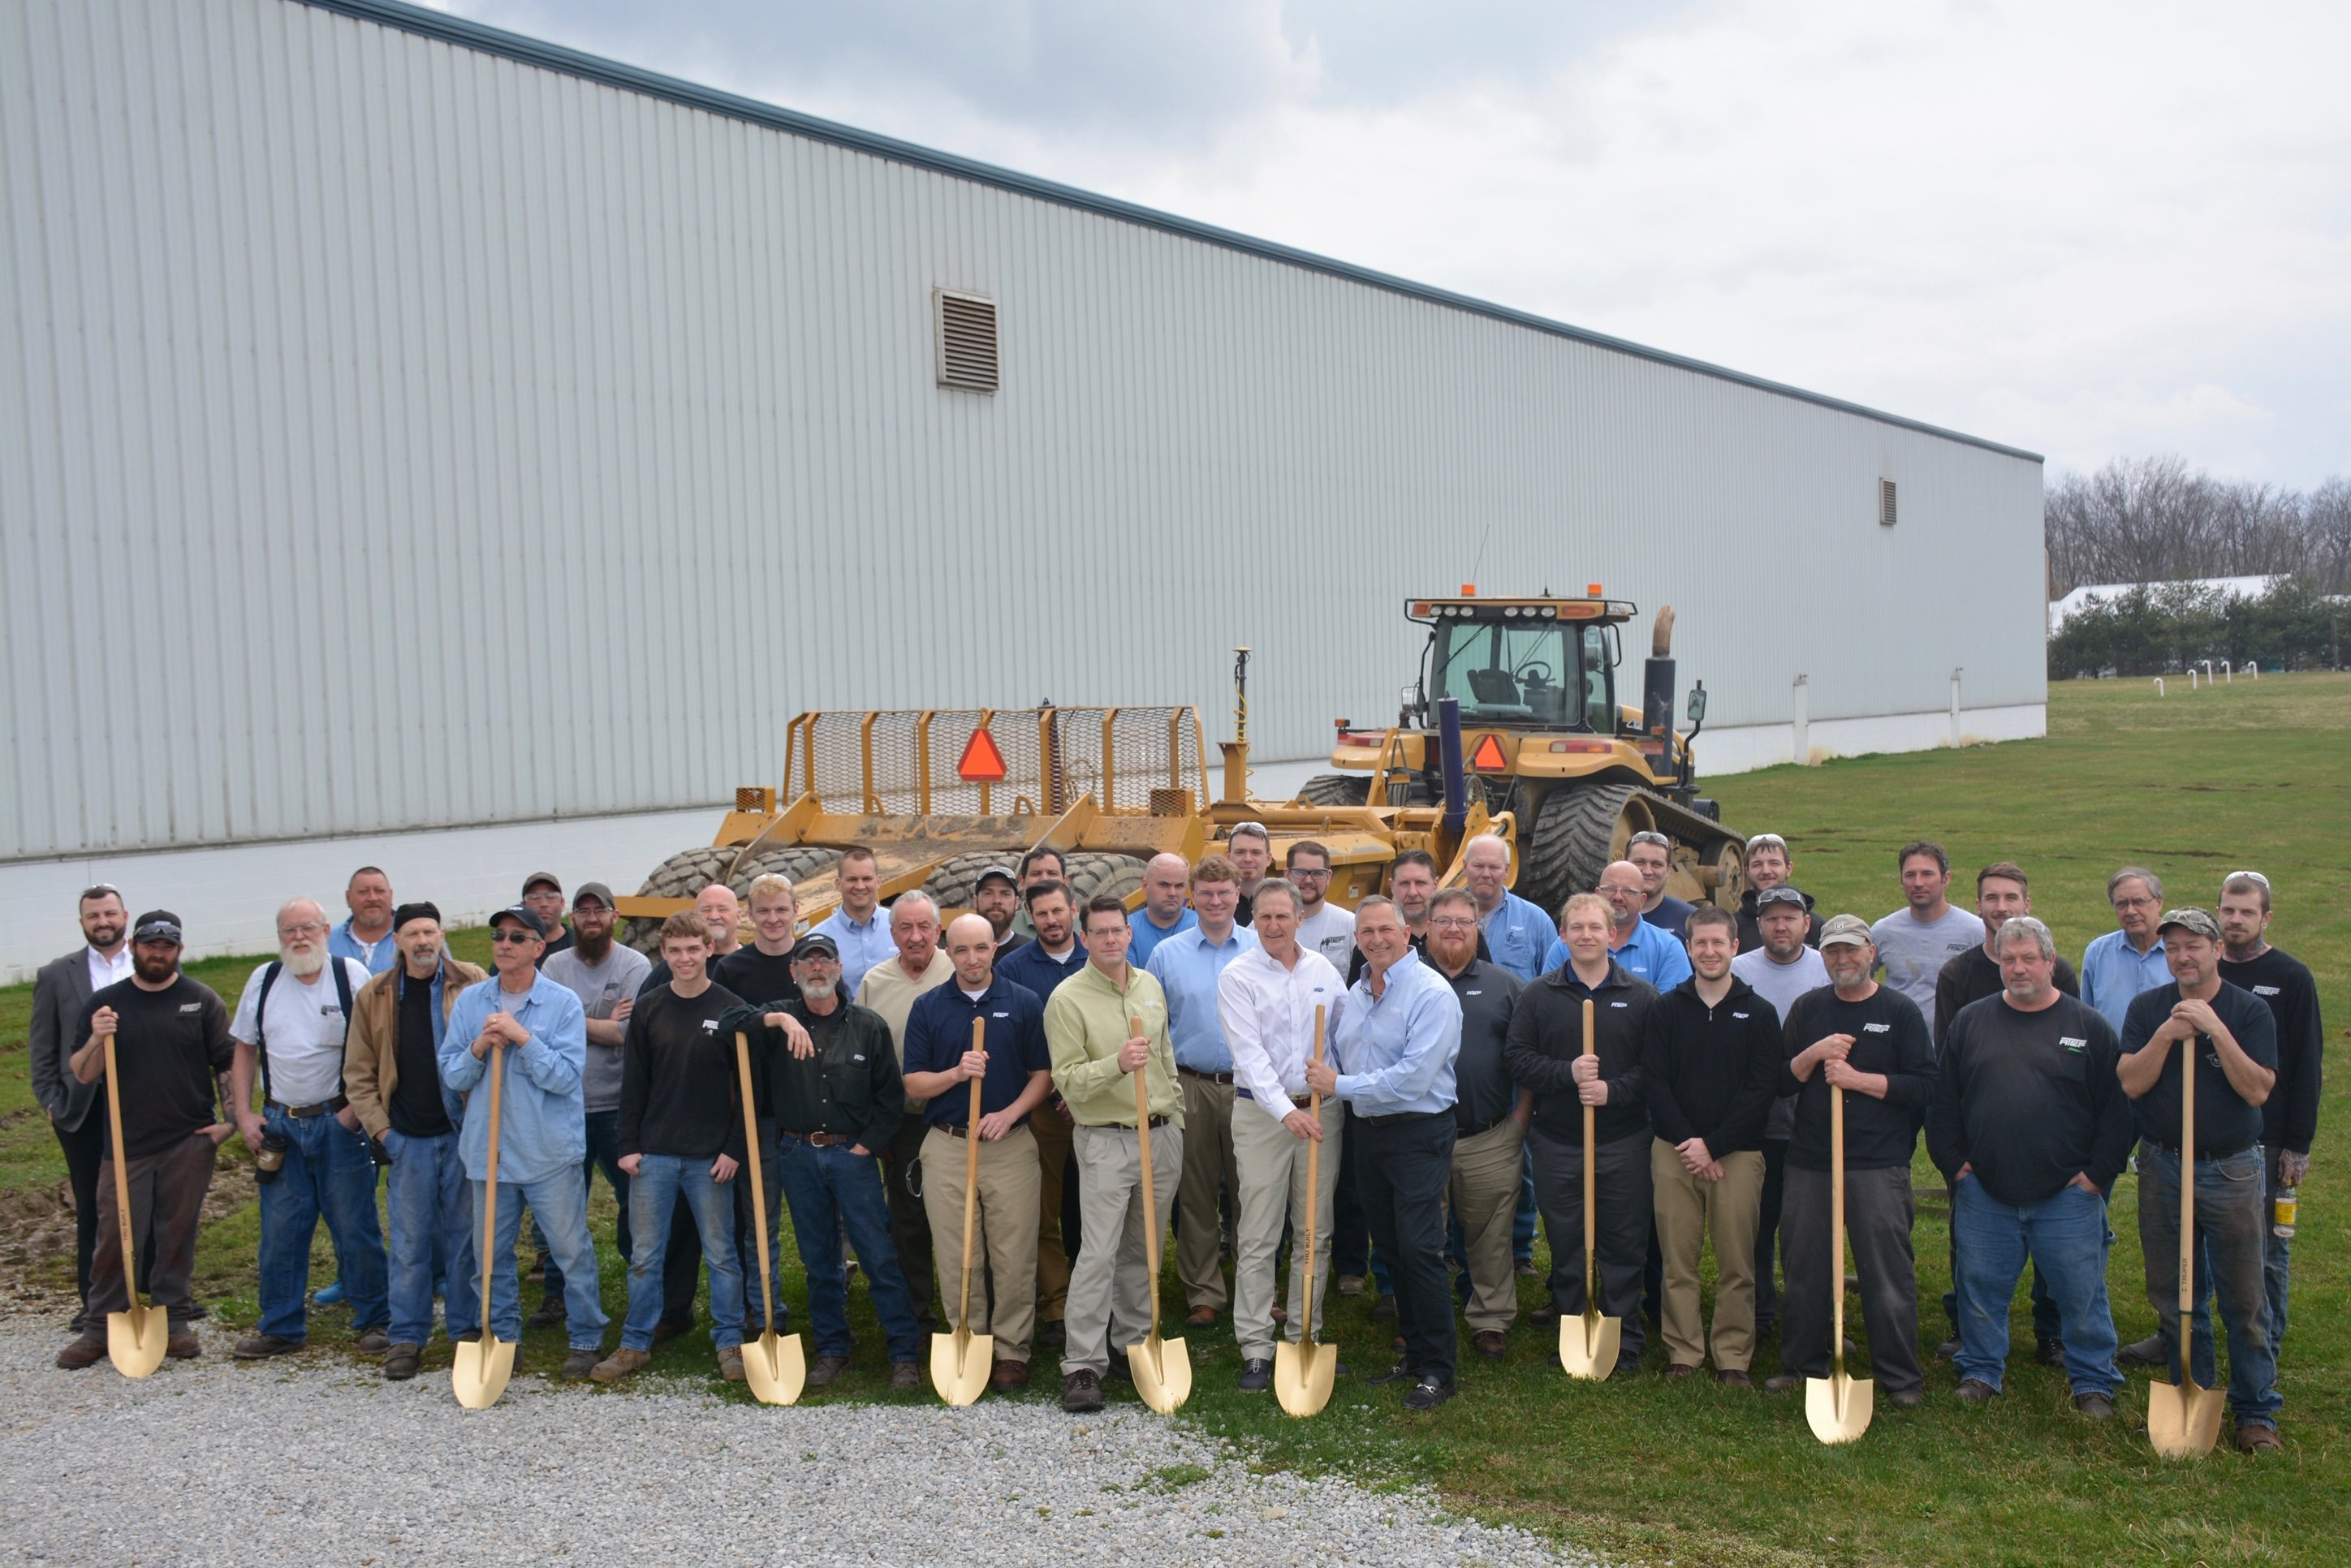 Press Release: AT&F Advanced Metals Facility Expansion